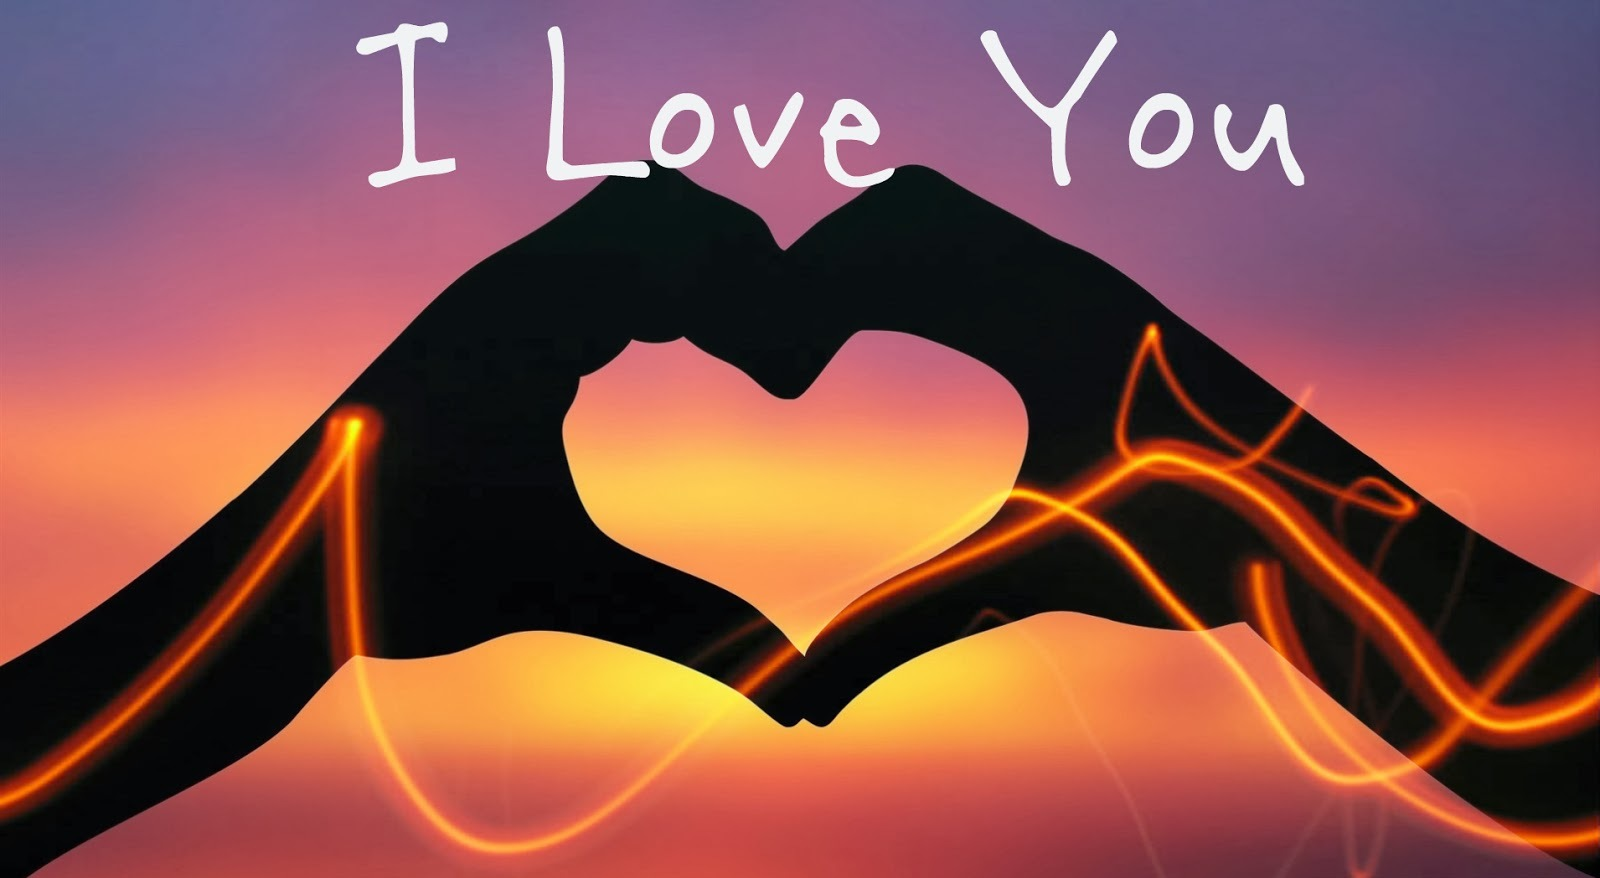 Wallpaper download in love -  I Love You Hd Wallpaper Hvd